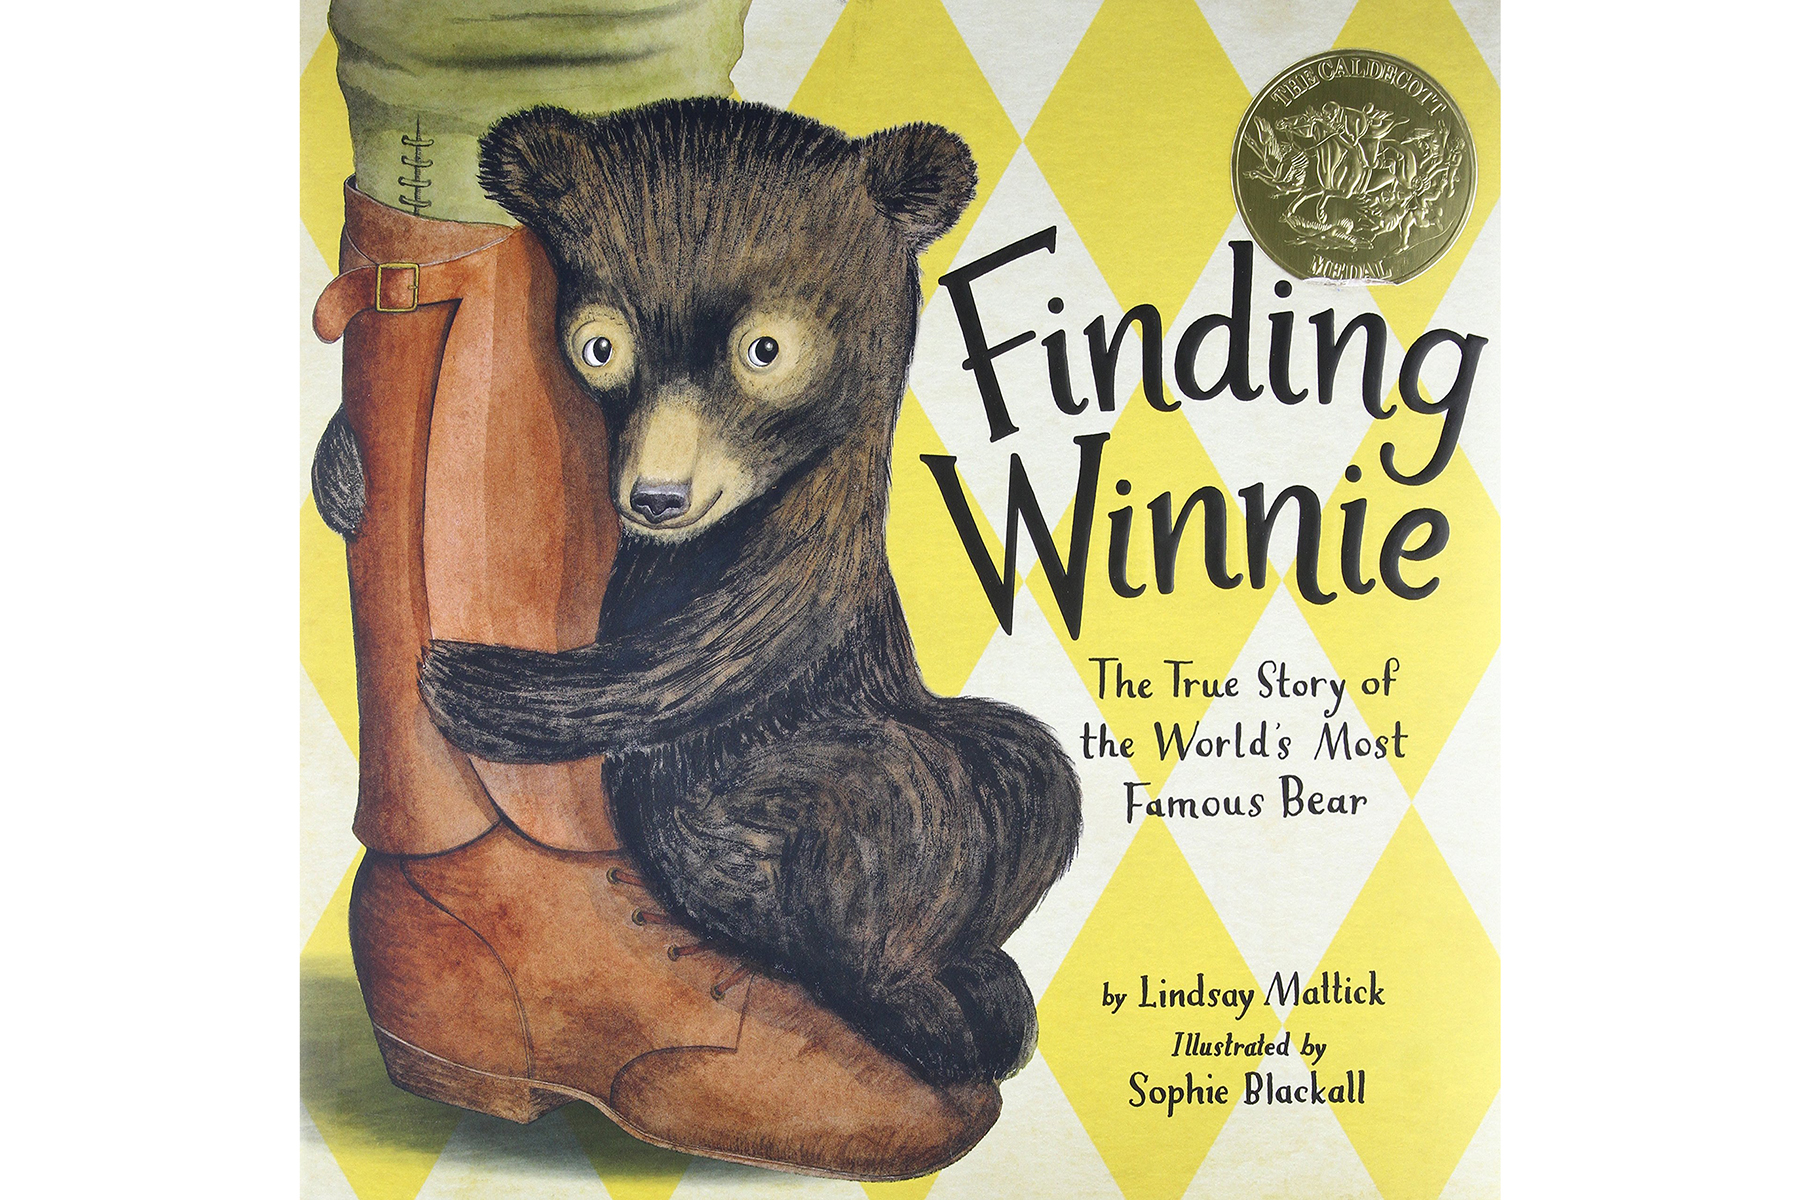 <em>Finding Winnie: The True Story of the World's Most Famous Bear</em>, by Lindsay Mattick and Sophie Blackall (Illustrator)